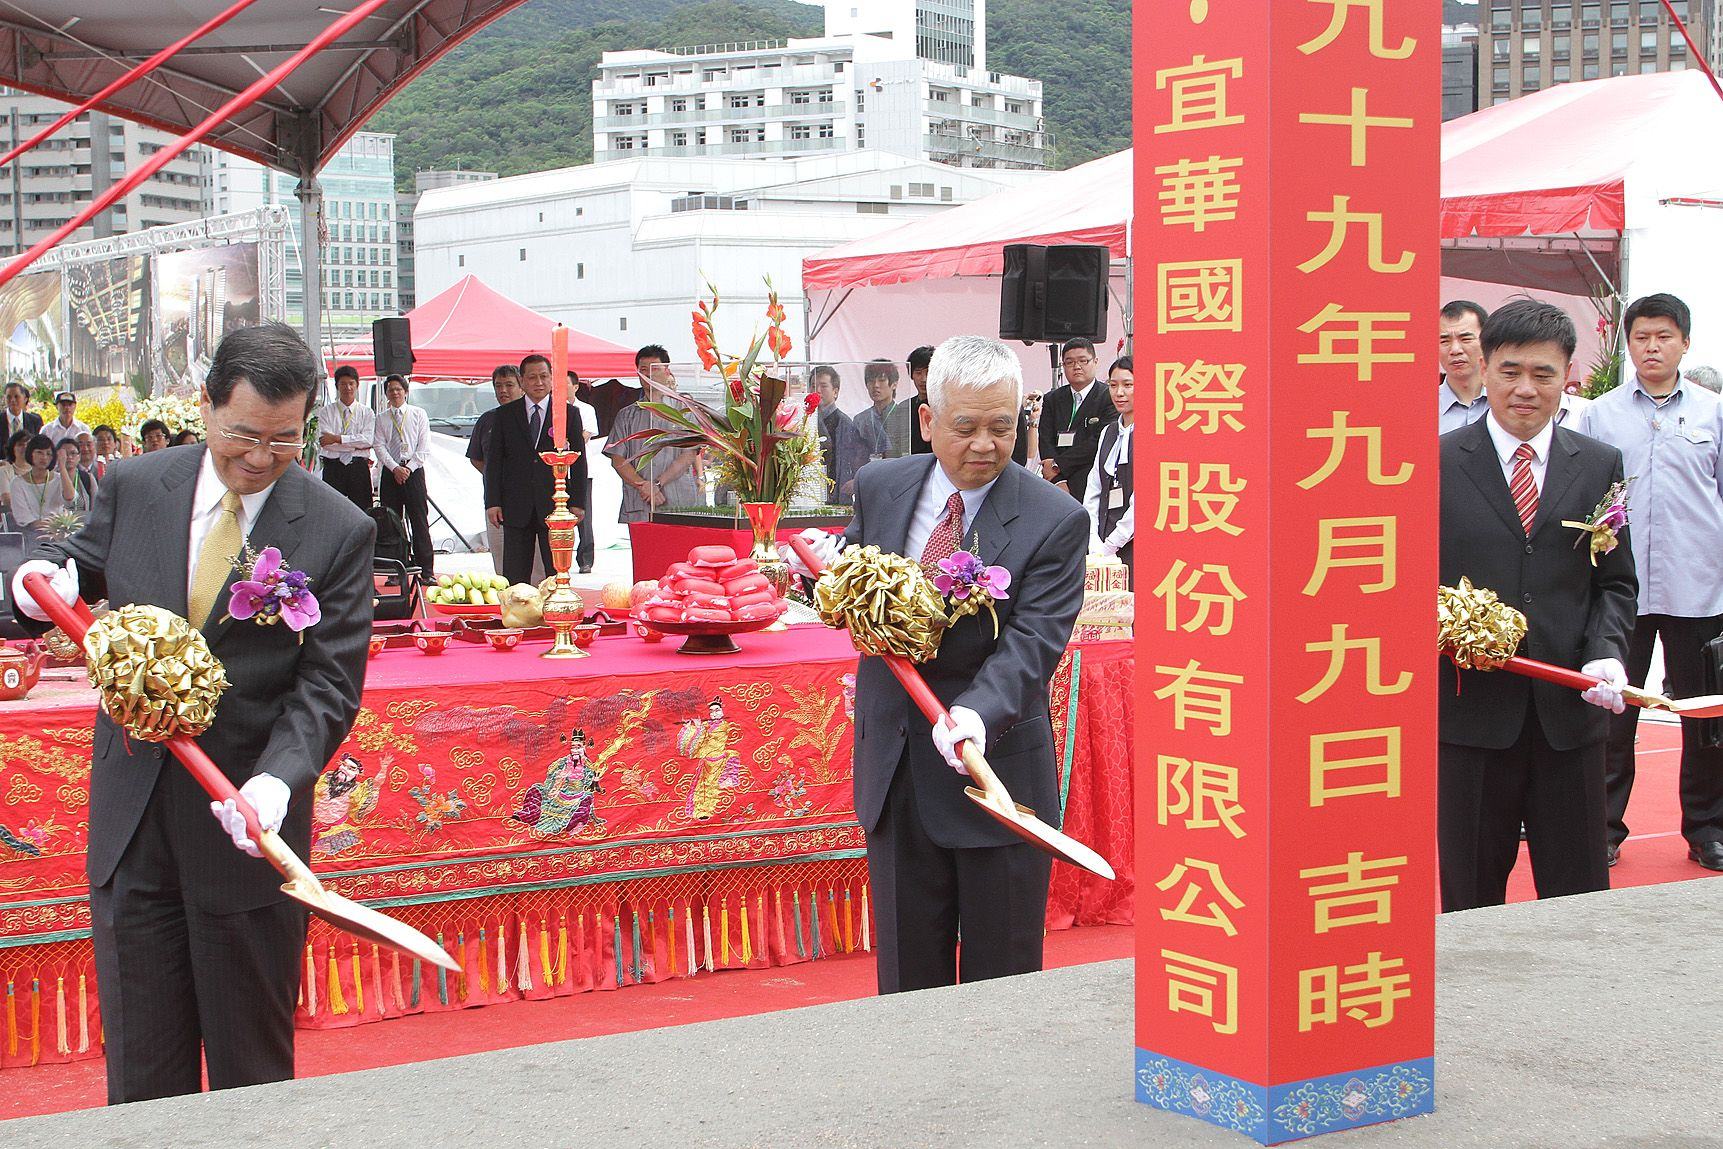 From left, Vice President Vincent Siew, B.V. Riu and Taipei City Mayor Hau Lung-bin perform the groundbreaking ceremony yesterday in Taipei.